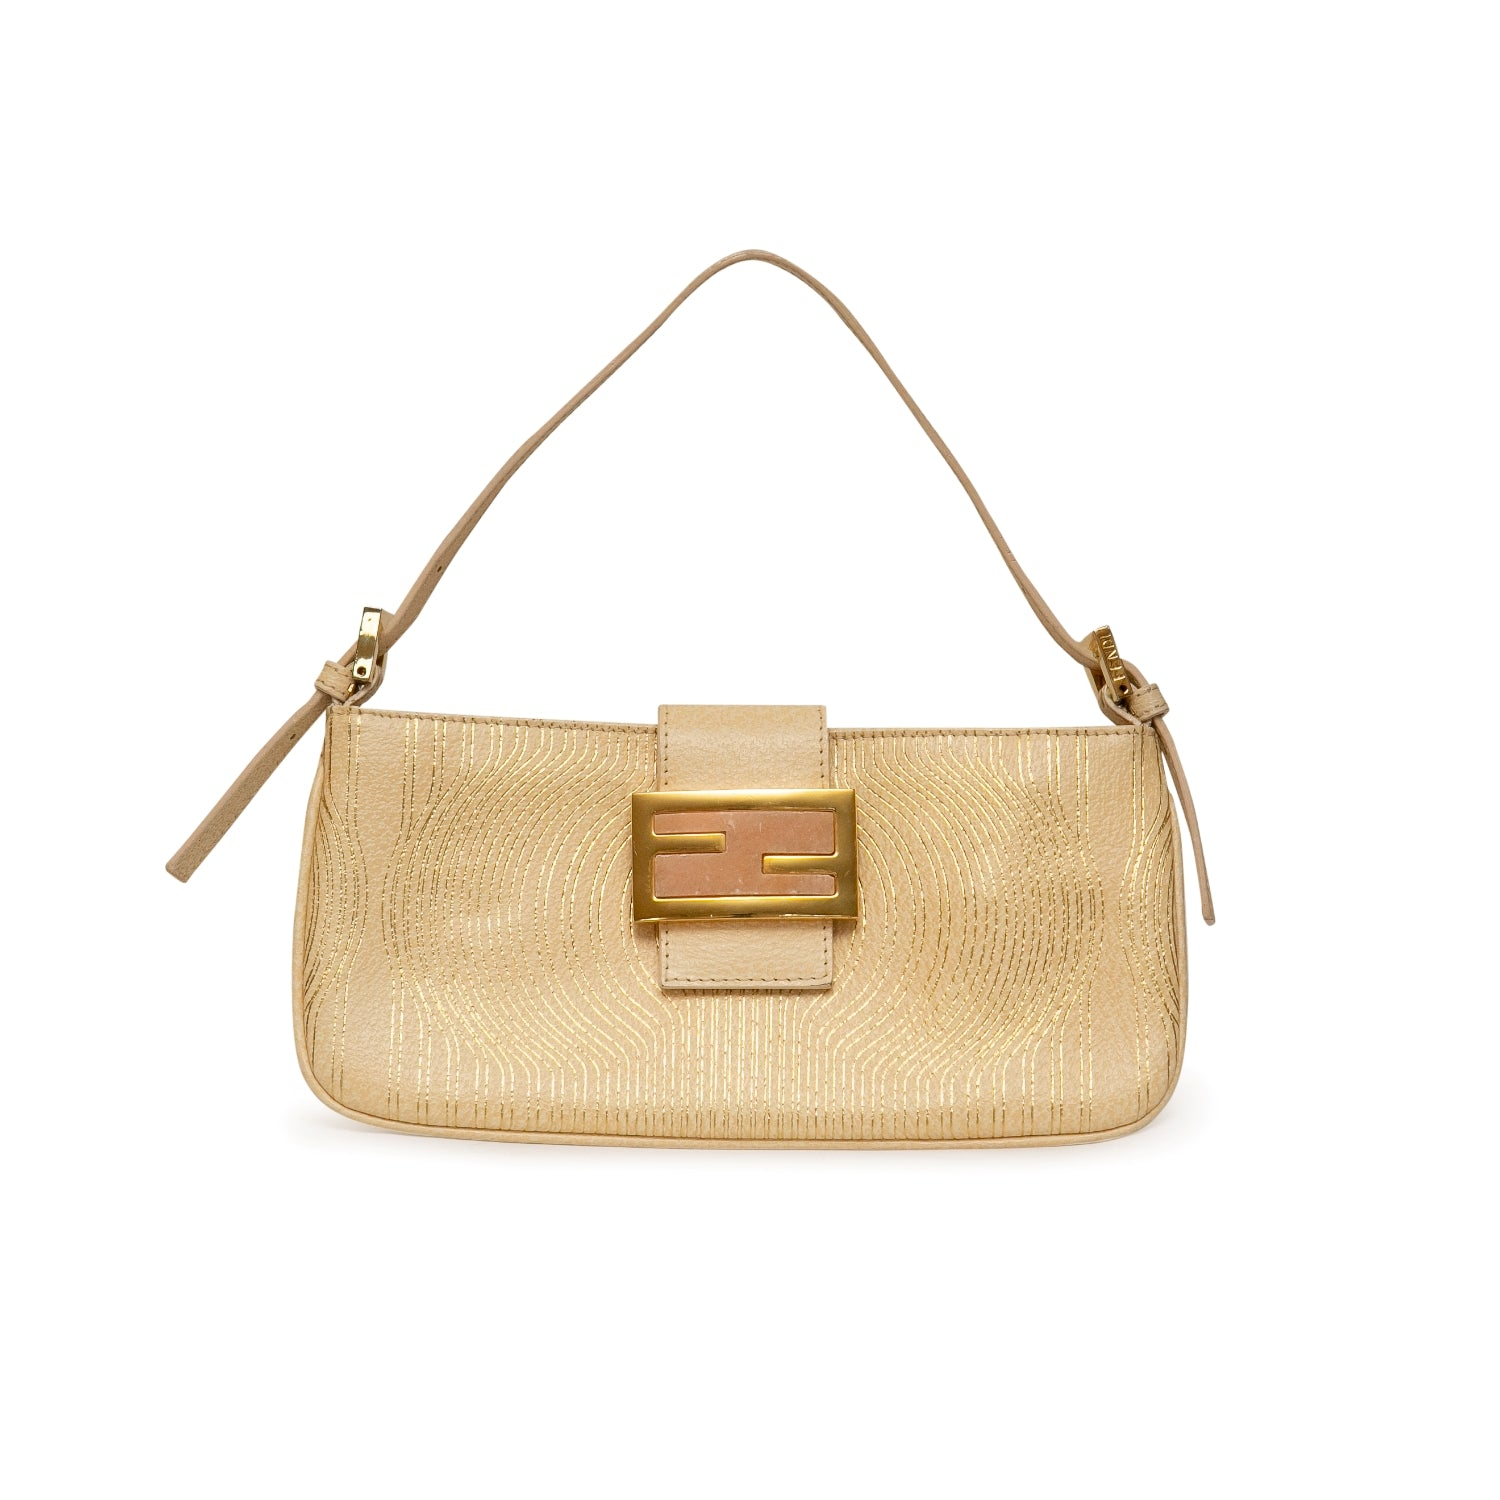 ladiesoflux - Fendi Leather Mini Baguette - Ladies Of Lux - Handbag